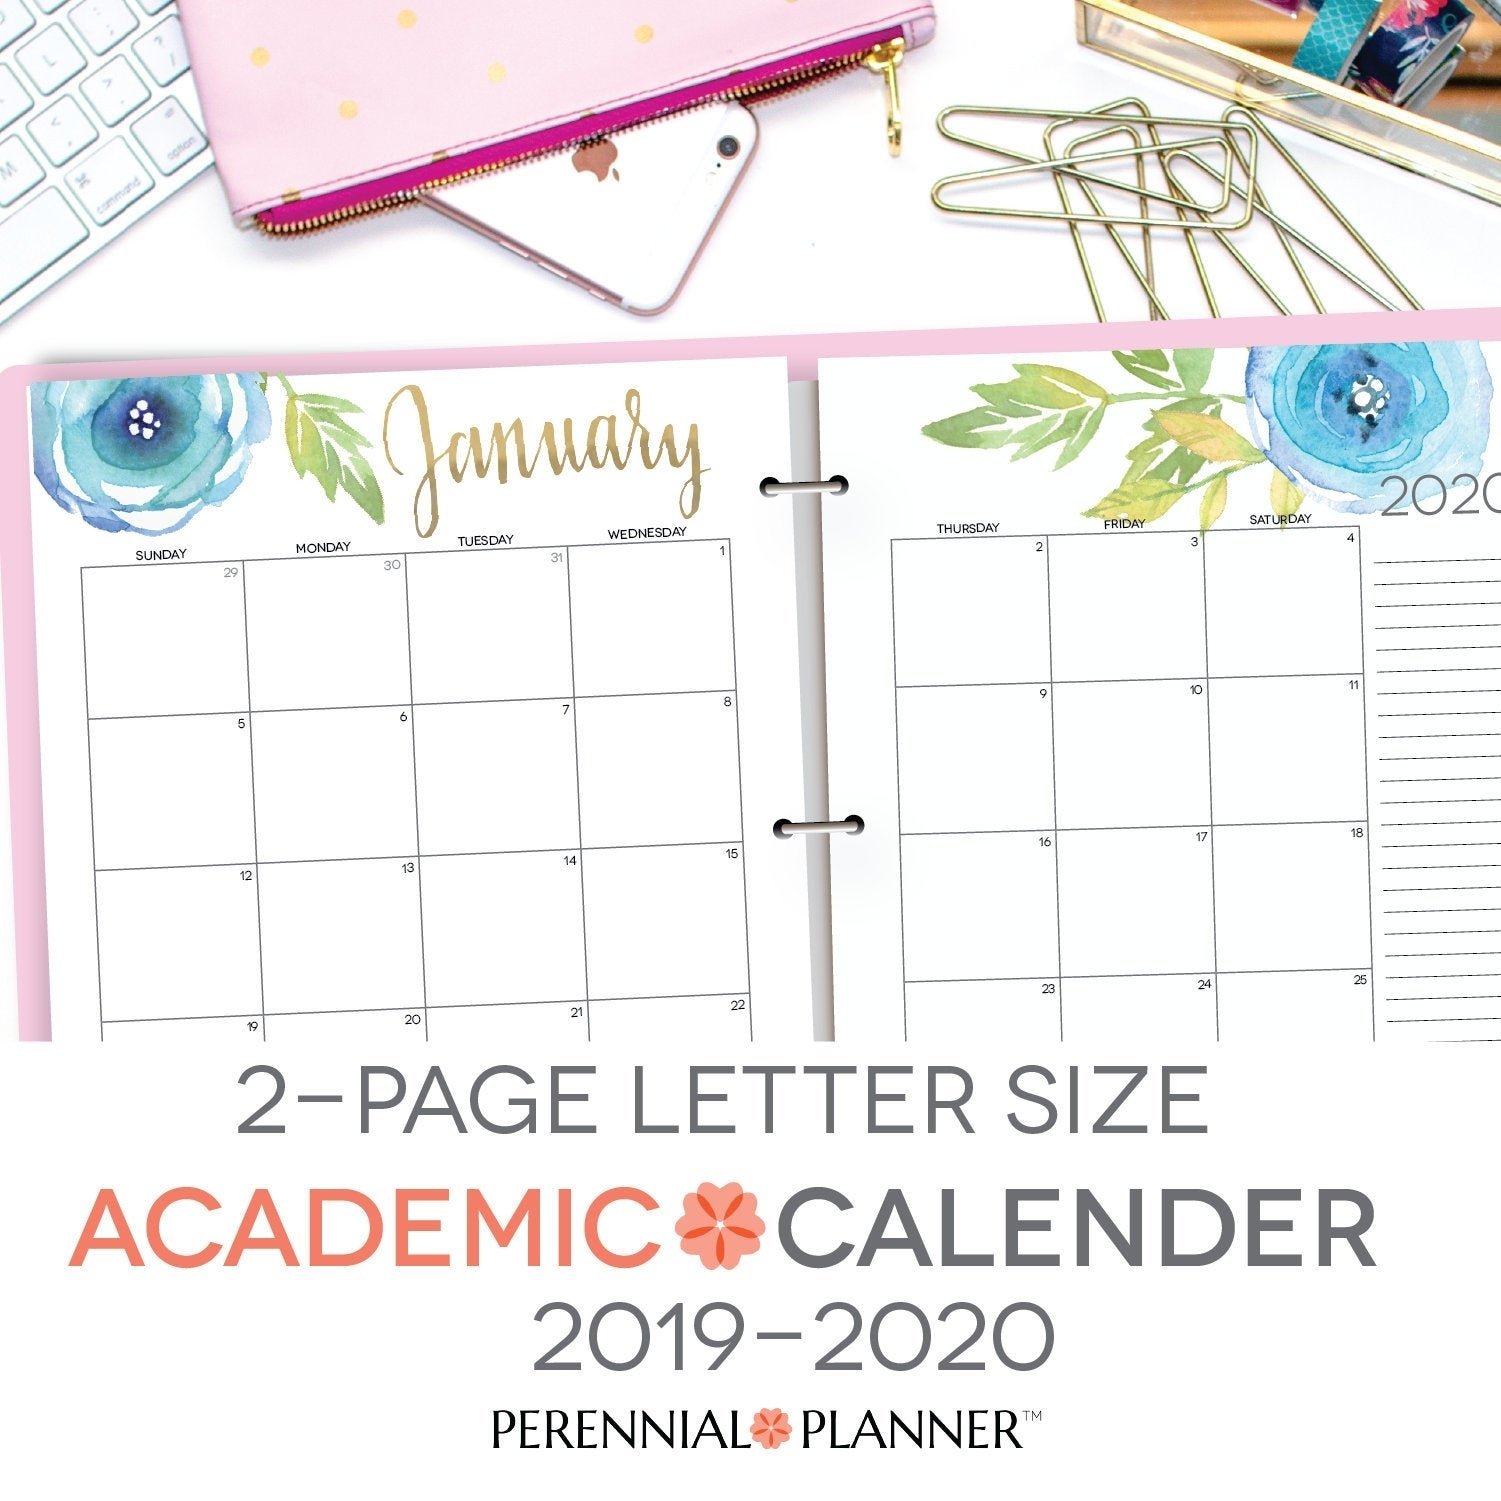 Printable Academic Calendar 2019-2020 Two Page Spread | Etsy intended for 2019- 2020 Academic Calendar Printable Empty Boxes